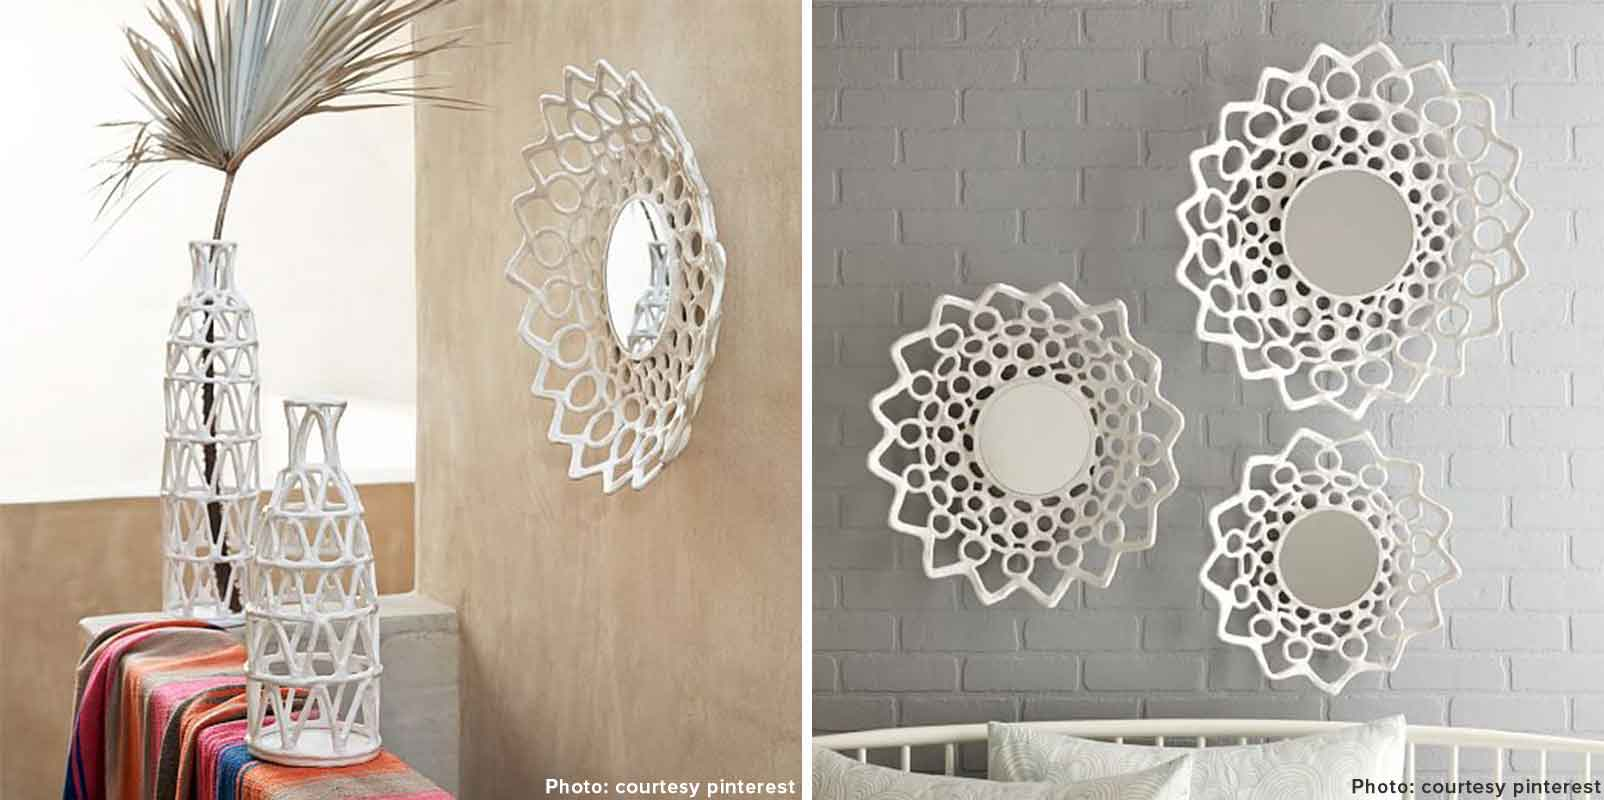 9 art and craft techniques to decorate interiors | Homeonline